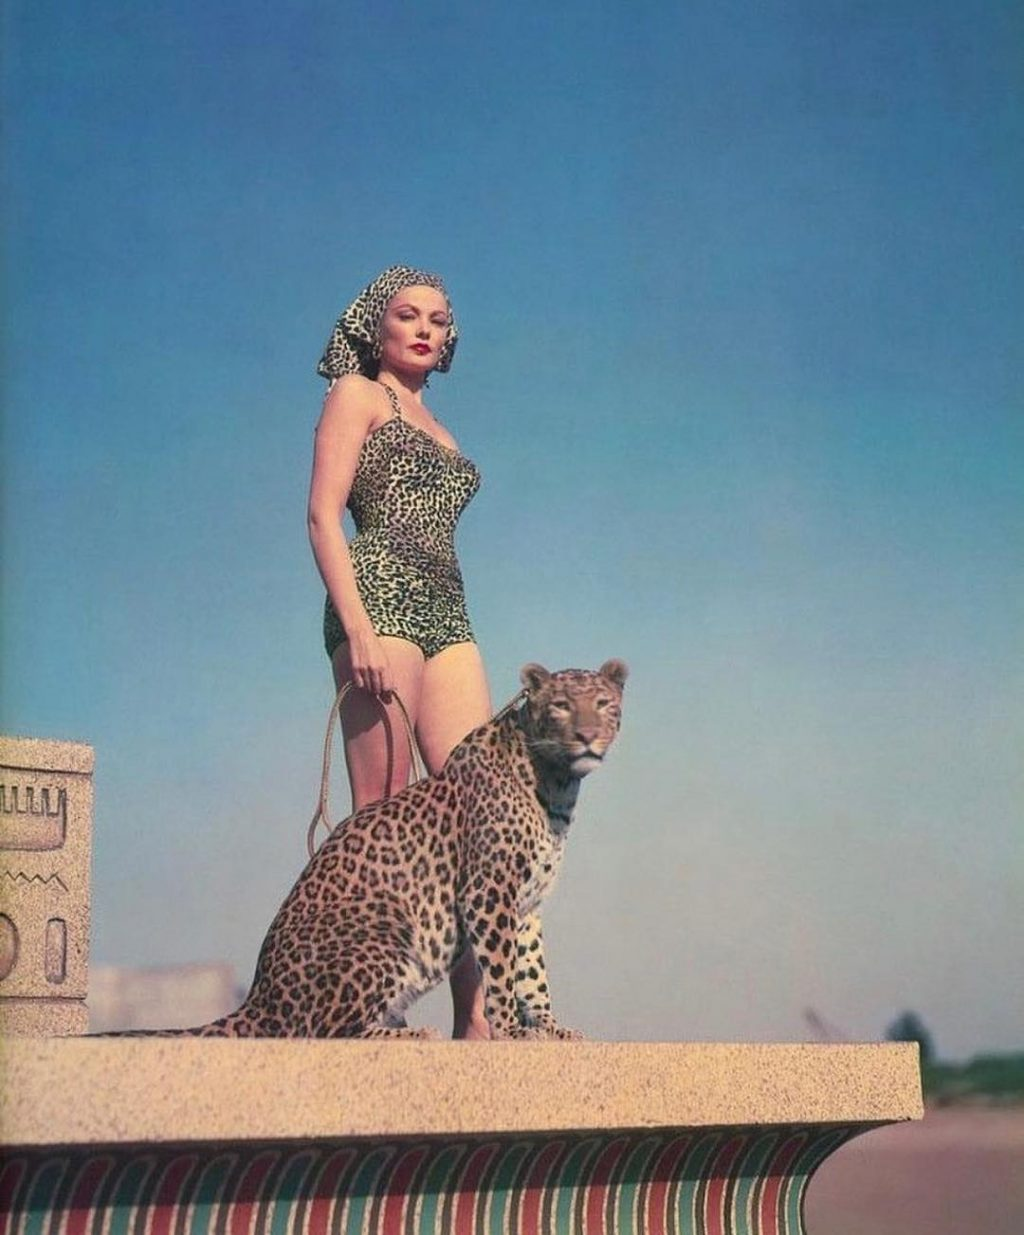 Is This Proof of Leopard Print's Enduring Appeal?